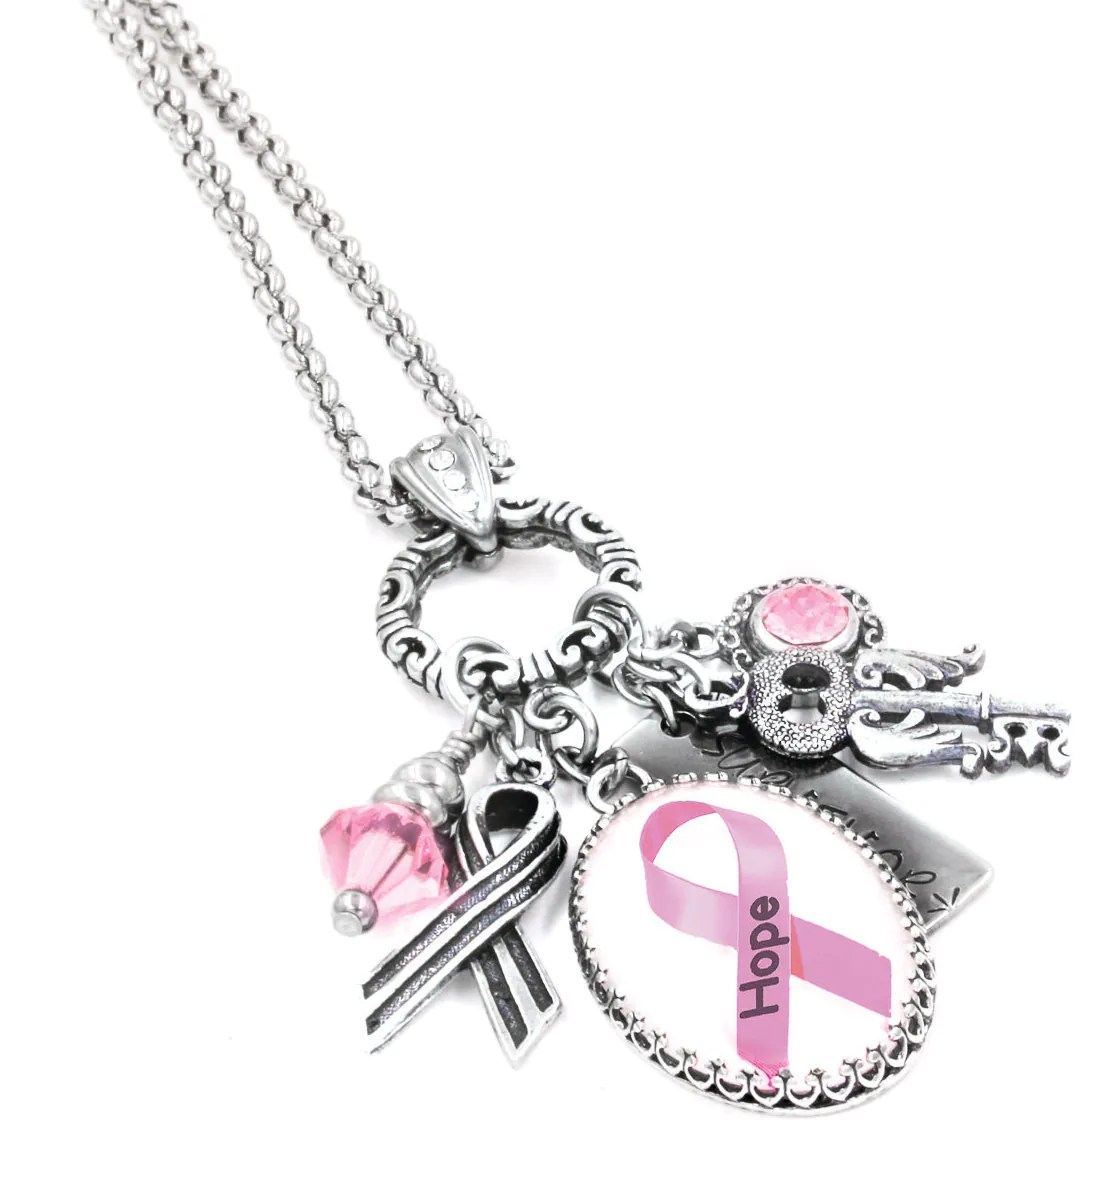 Breast Cancer Awareness Charm Necklace Breast Cancer Jewelry